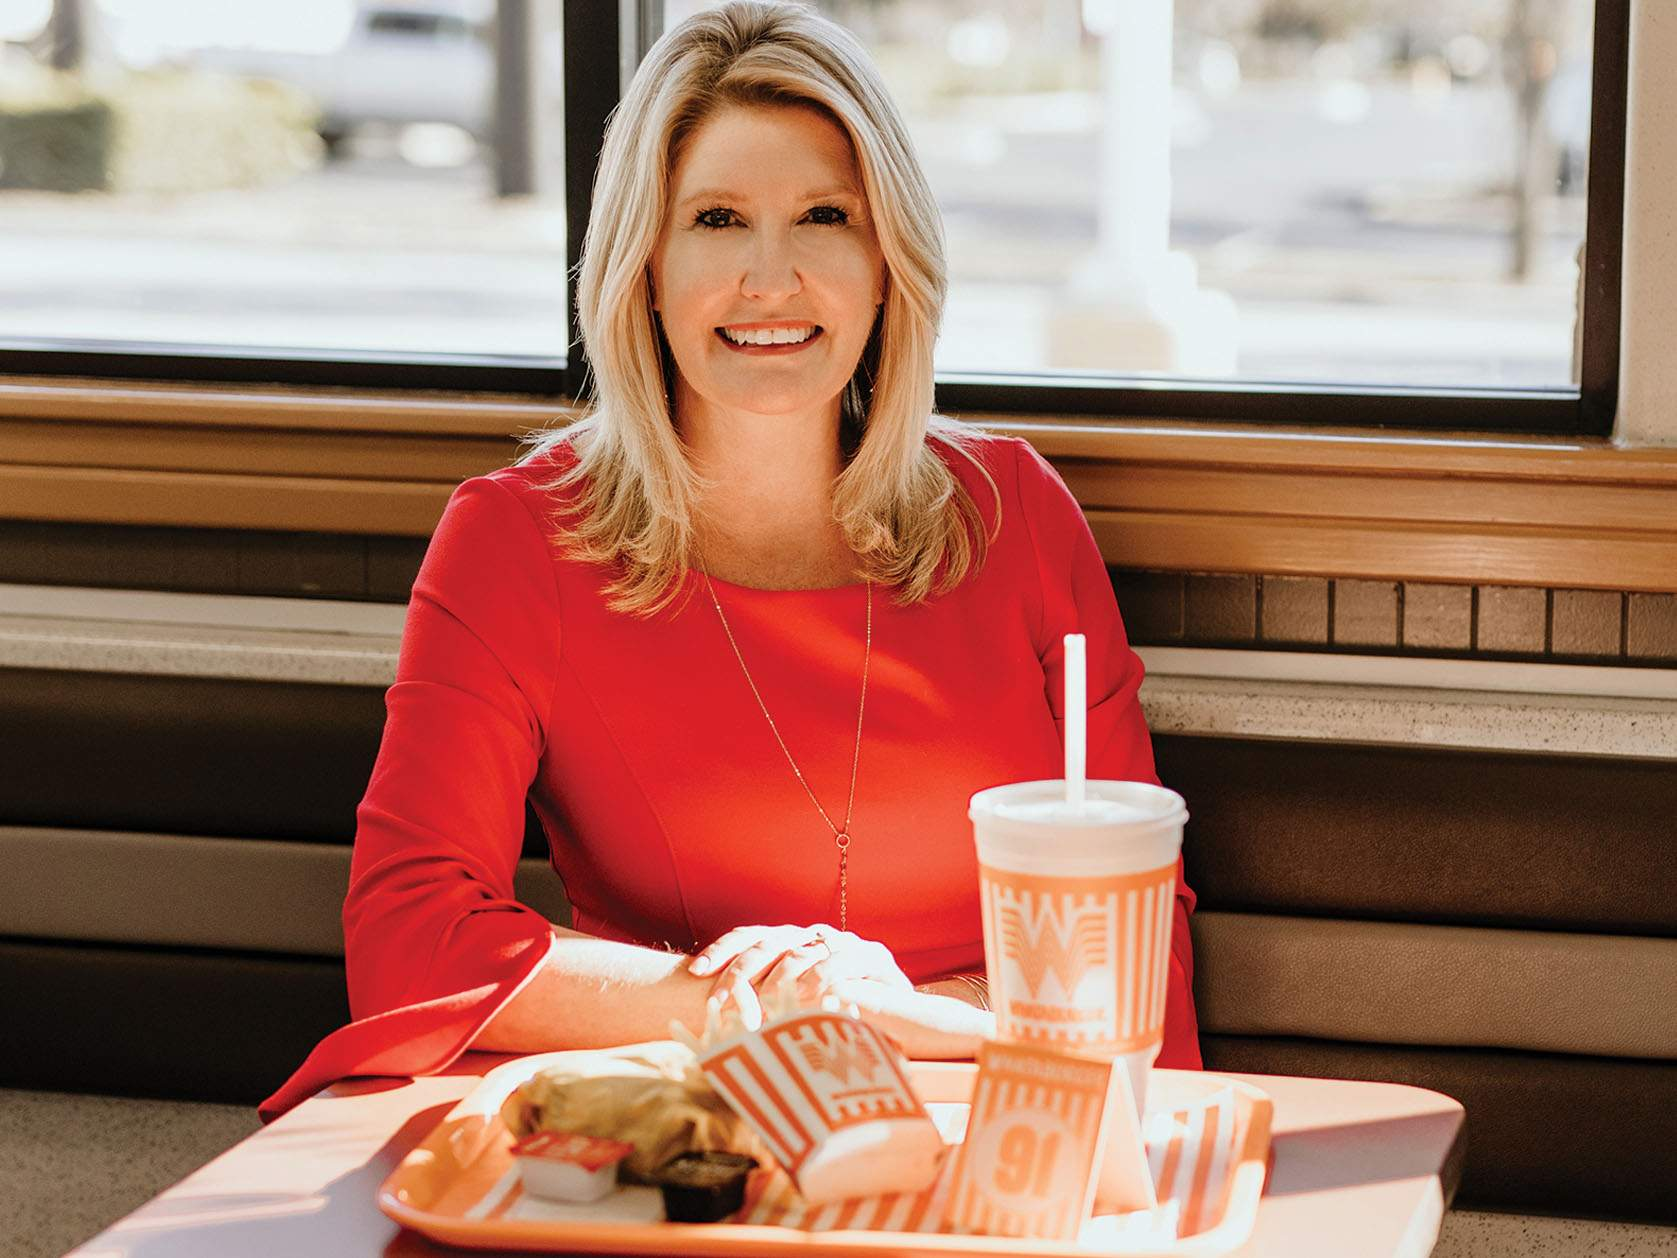 woman in red dress sitting at whataburger booth